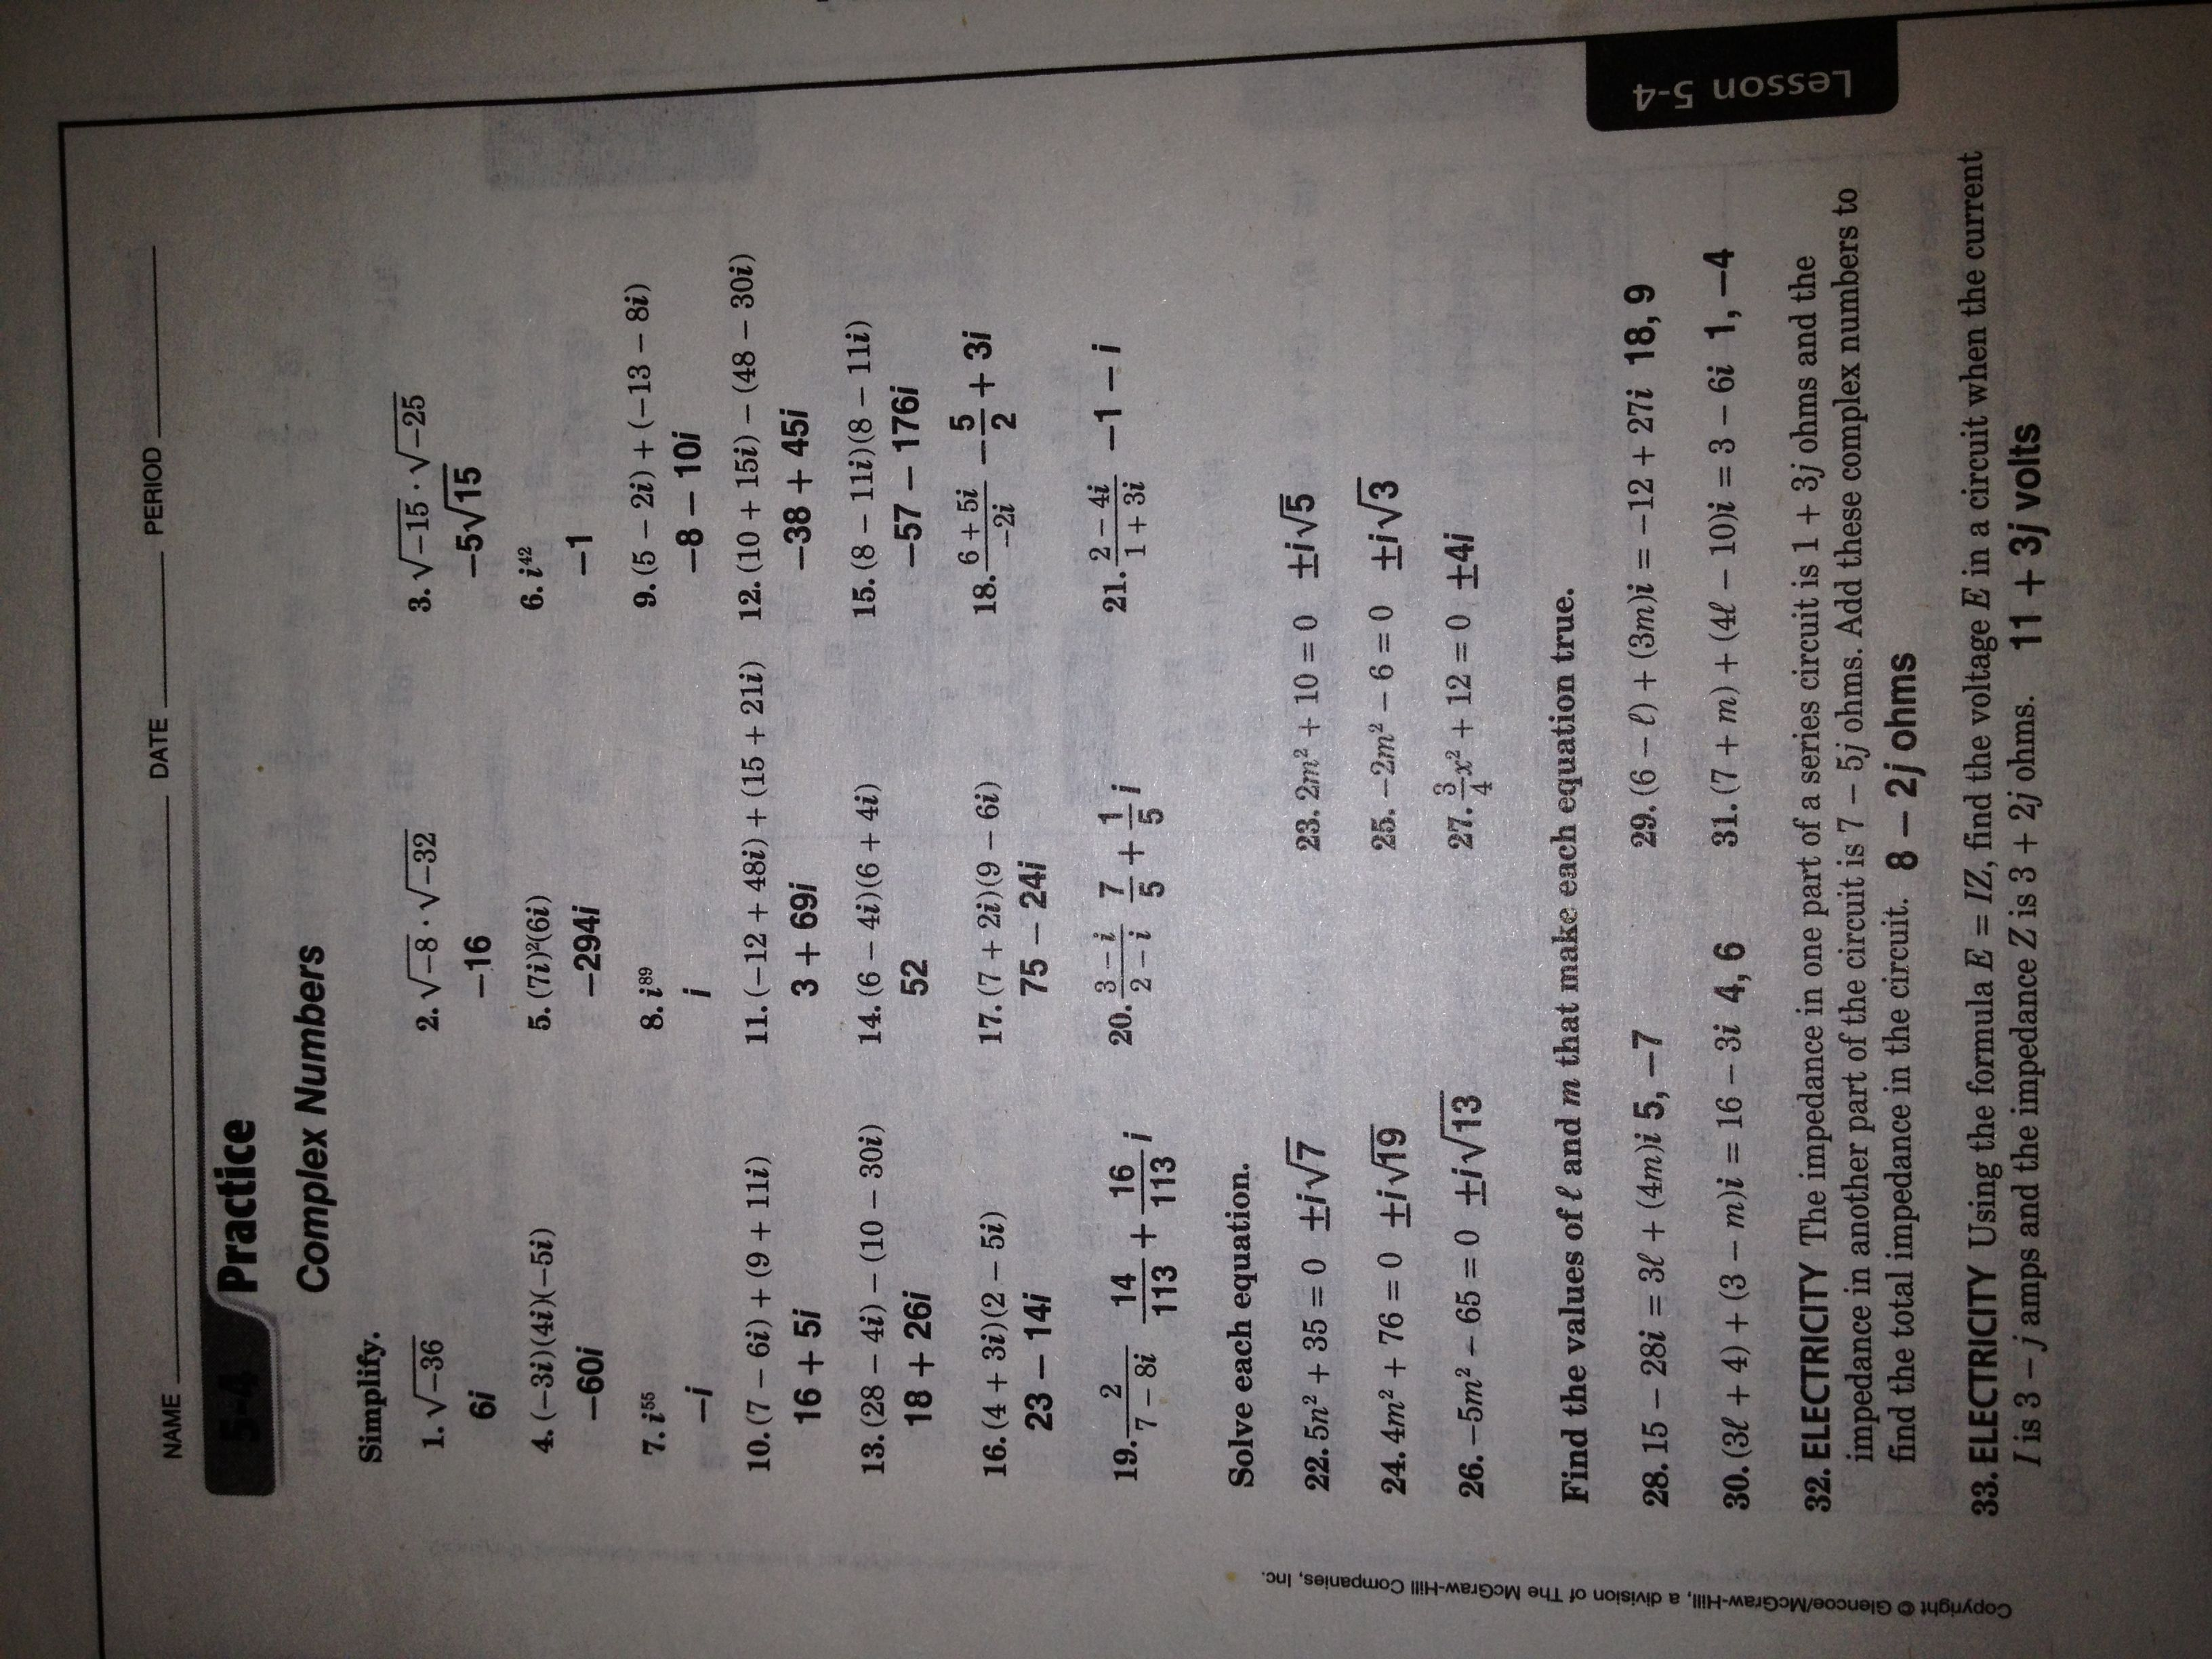 {Holt mcdougal mathematics homework help Ssays for sale – Holt Mcdougal Geometry Worksheet Answers